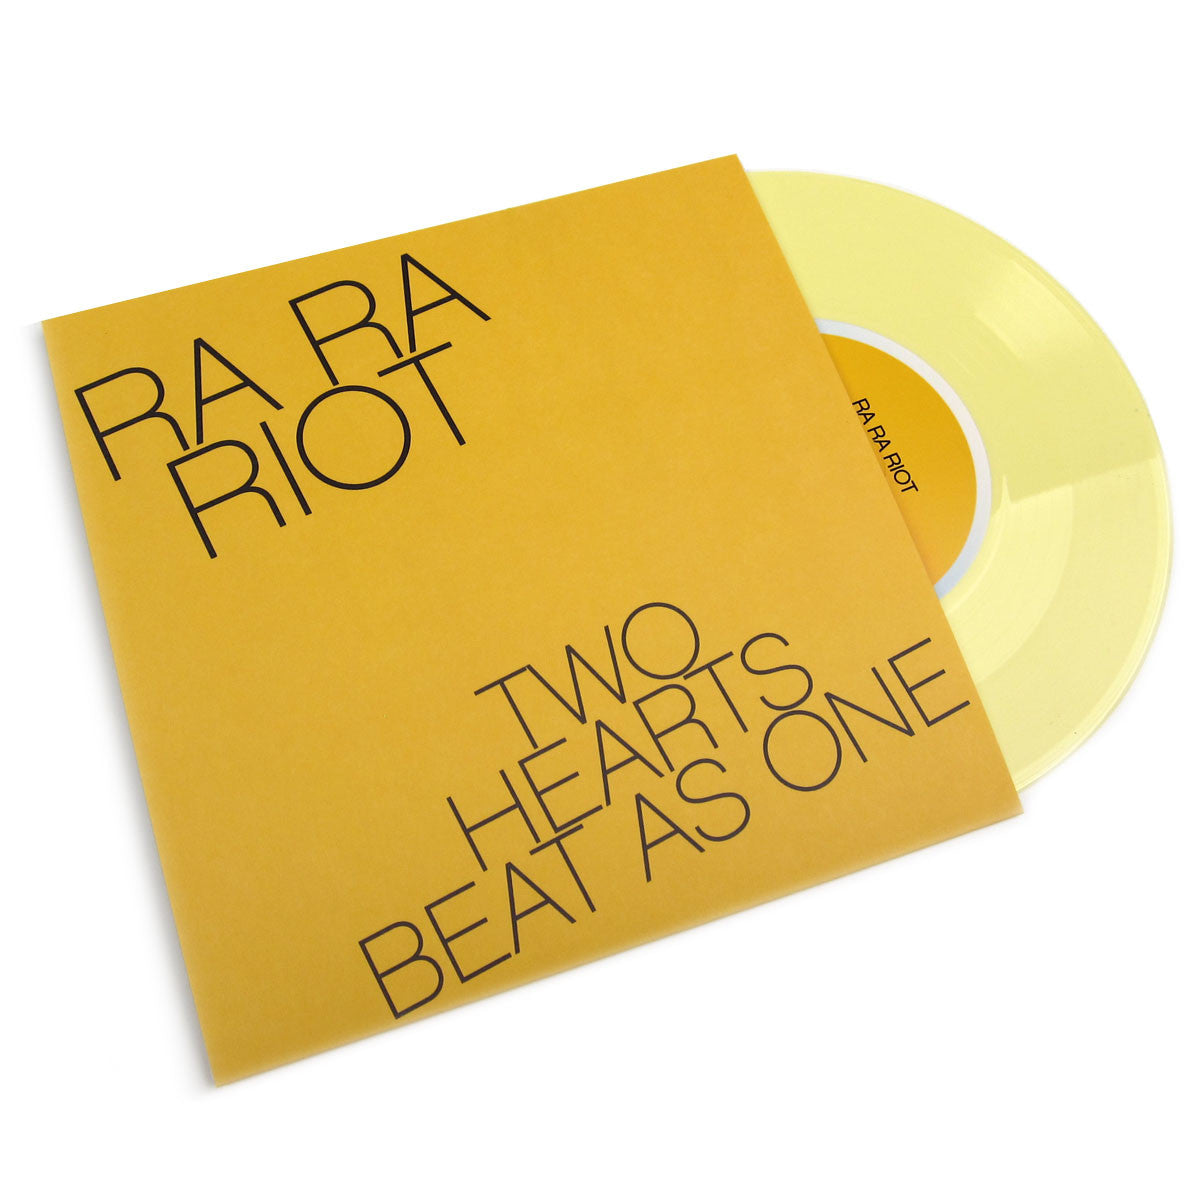 "Ra Ra Riot: Two Hearts Beat As One / Wilderness (Colored Vinyl) Vinyl 7"" (Record Store Day)"